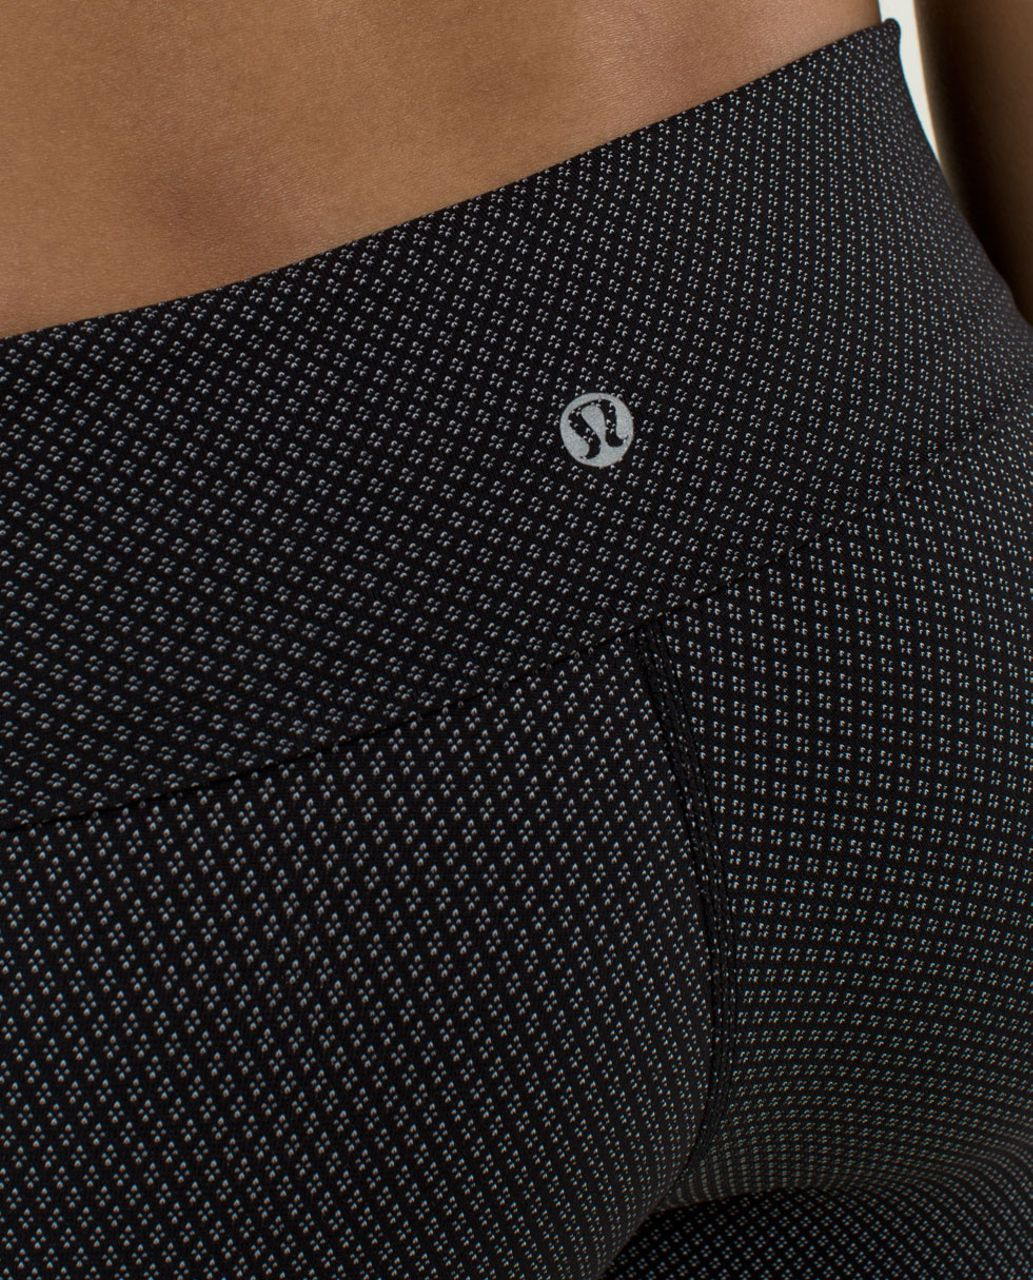 Lululemon Wunder Under Crop *Roll Down - Diamond Dot Black White